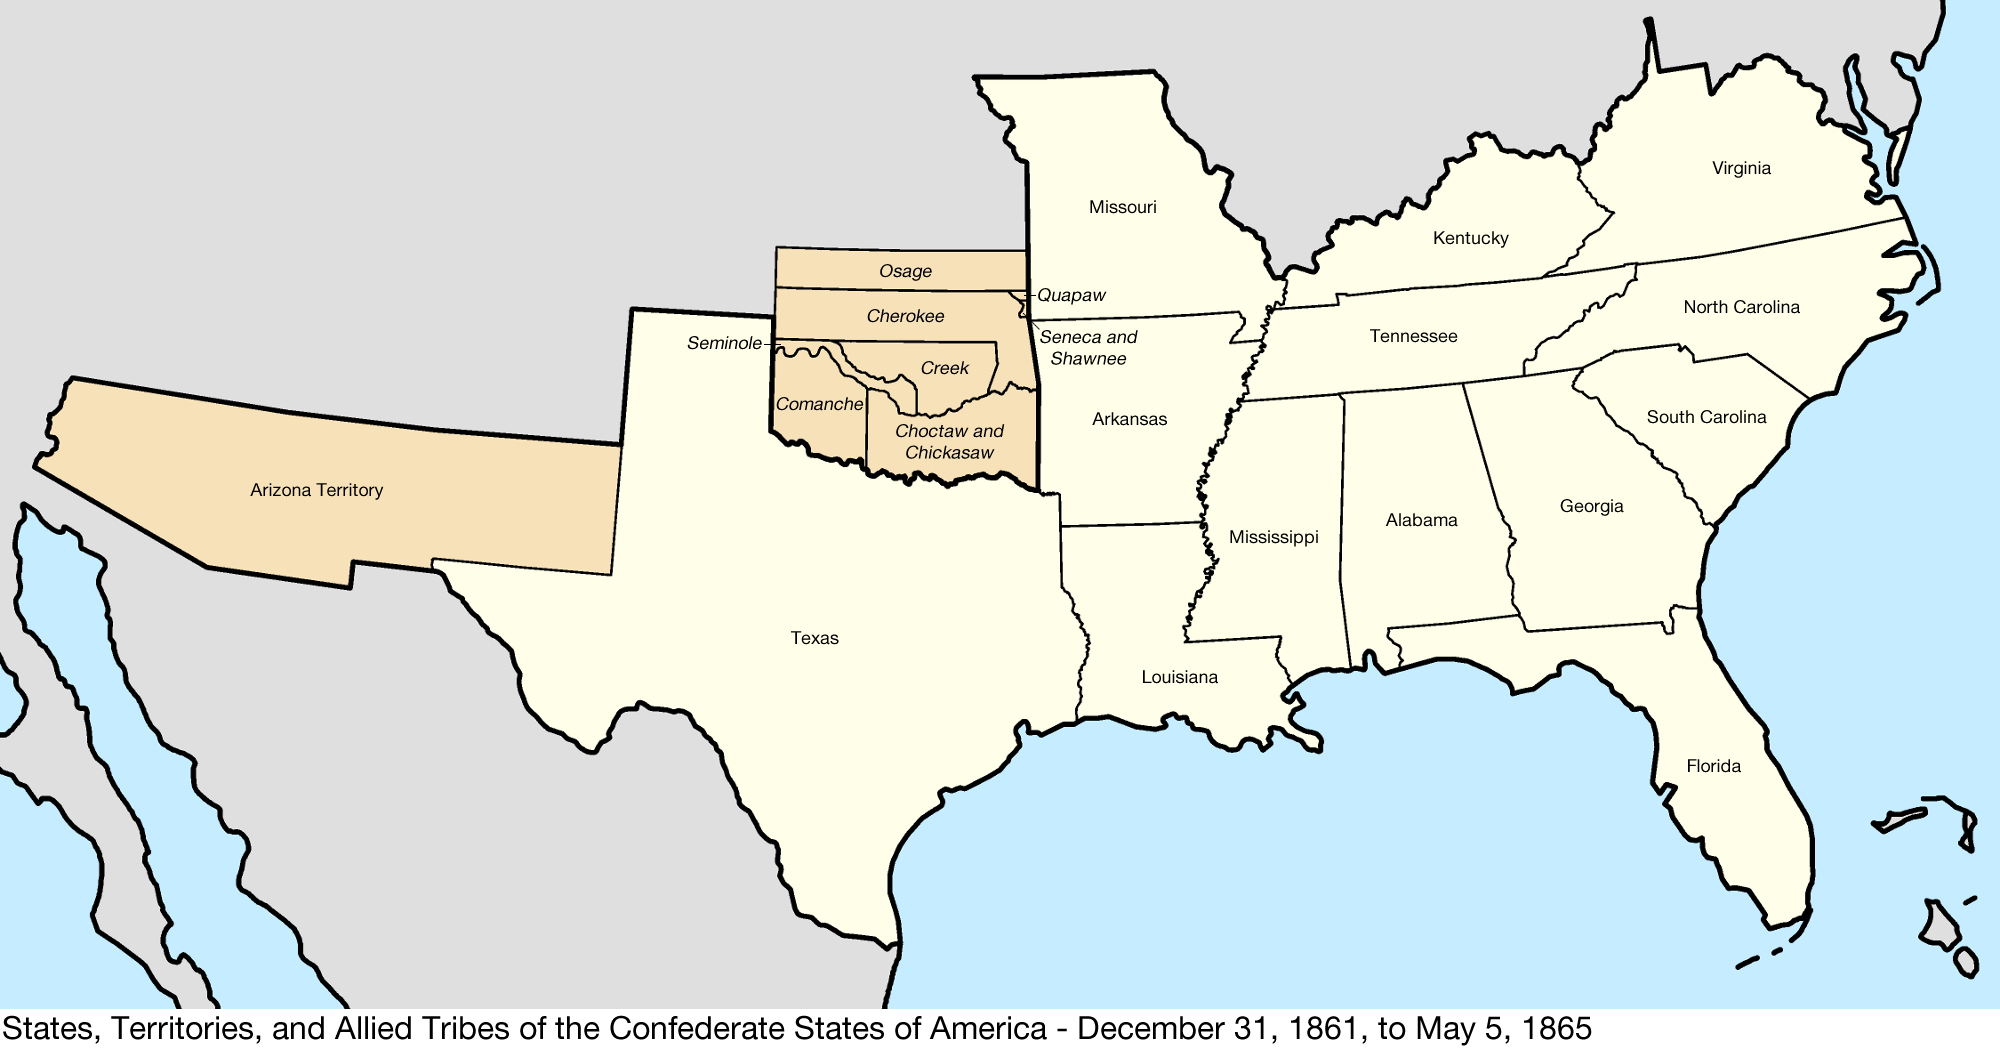 Map Of Georgia 1865.File Confederate States Map 1861 12 31 To 1865 05 05 Png Wikimedia